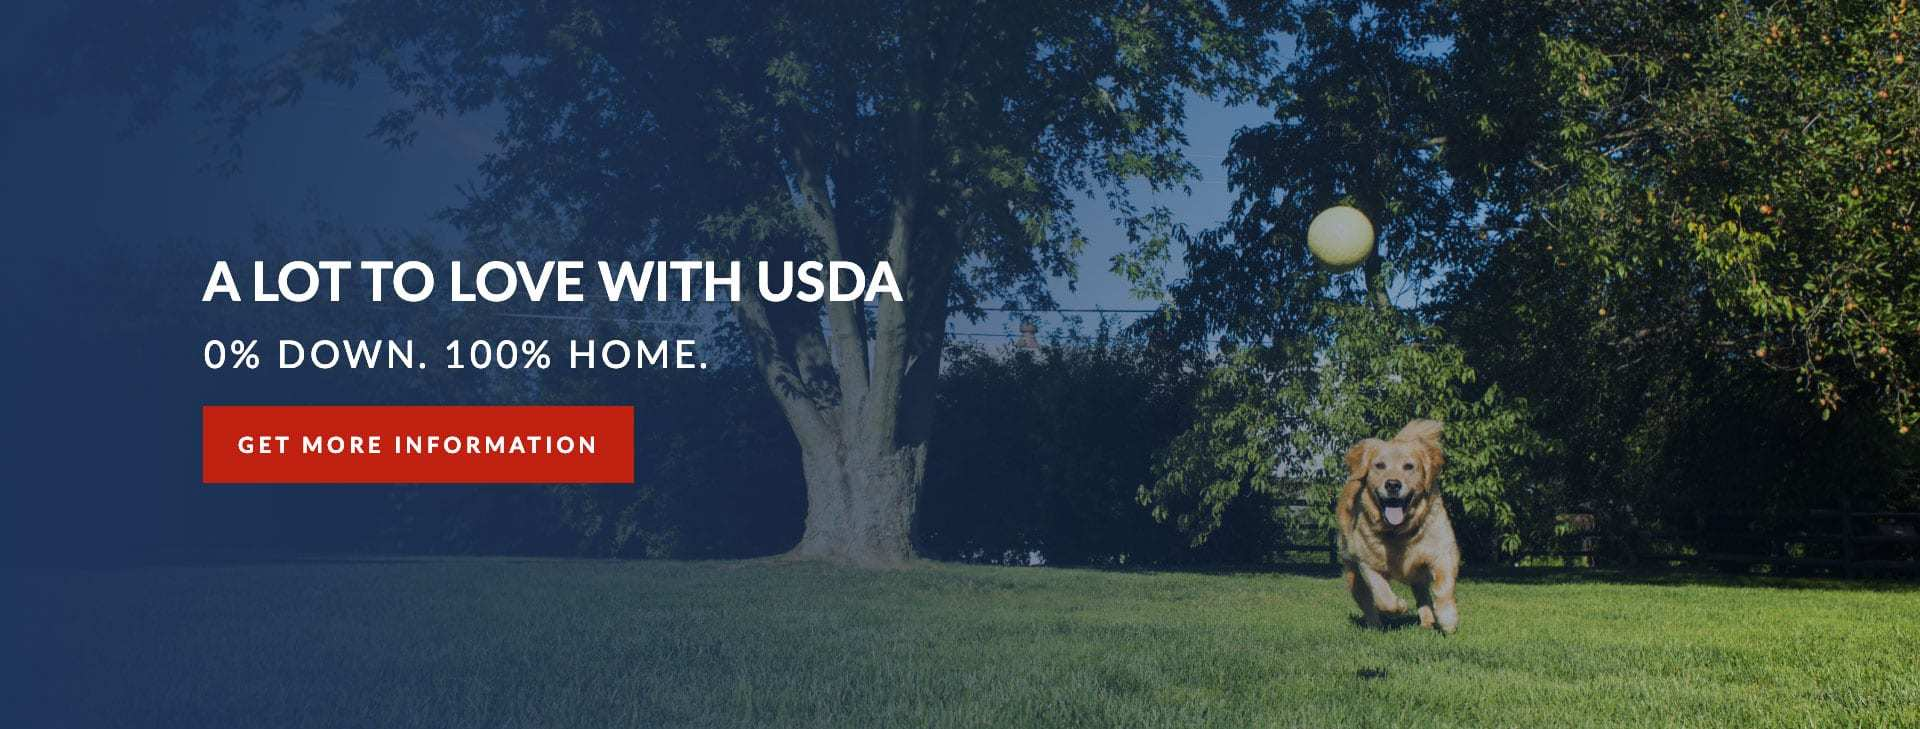 A Lot to Love with USDA